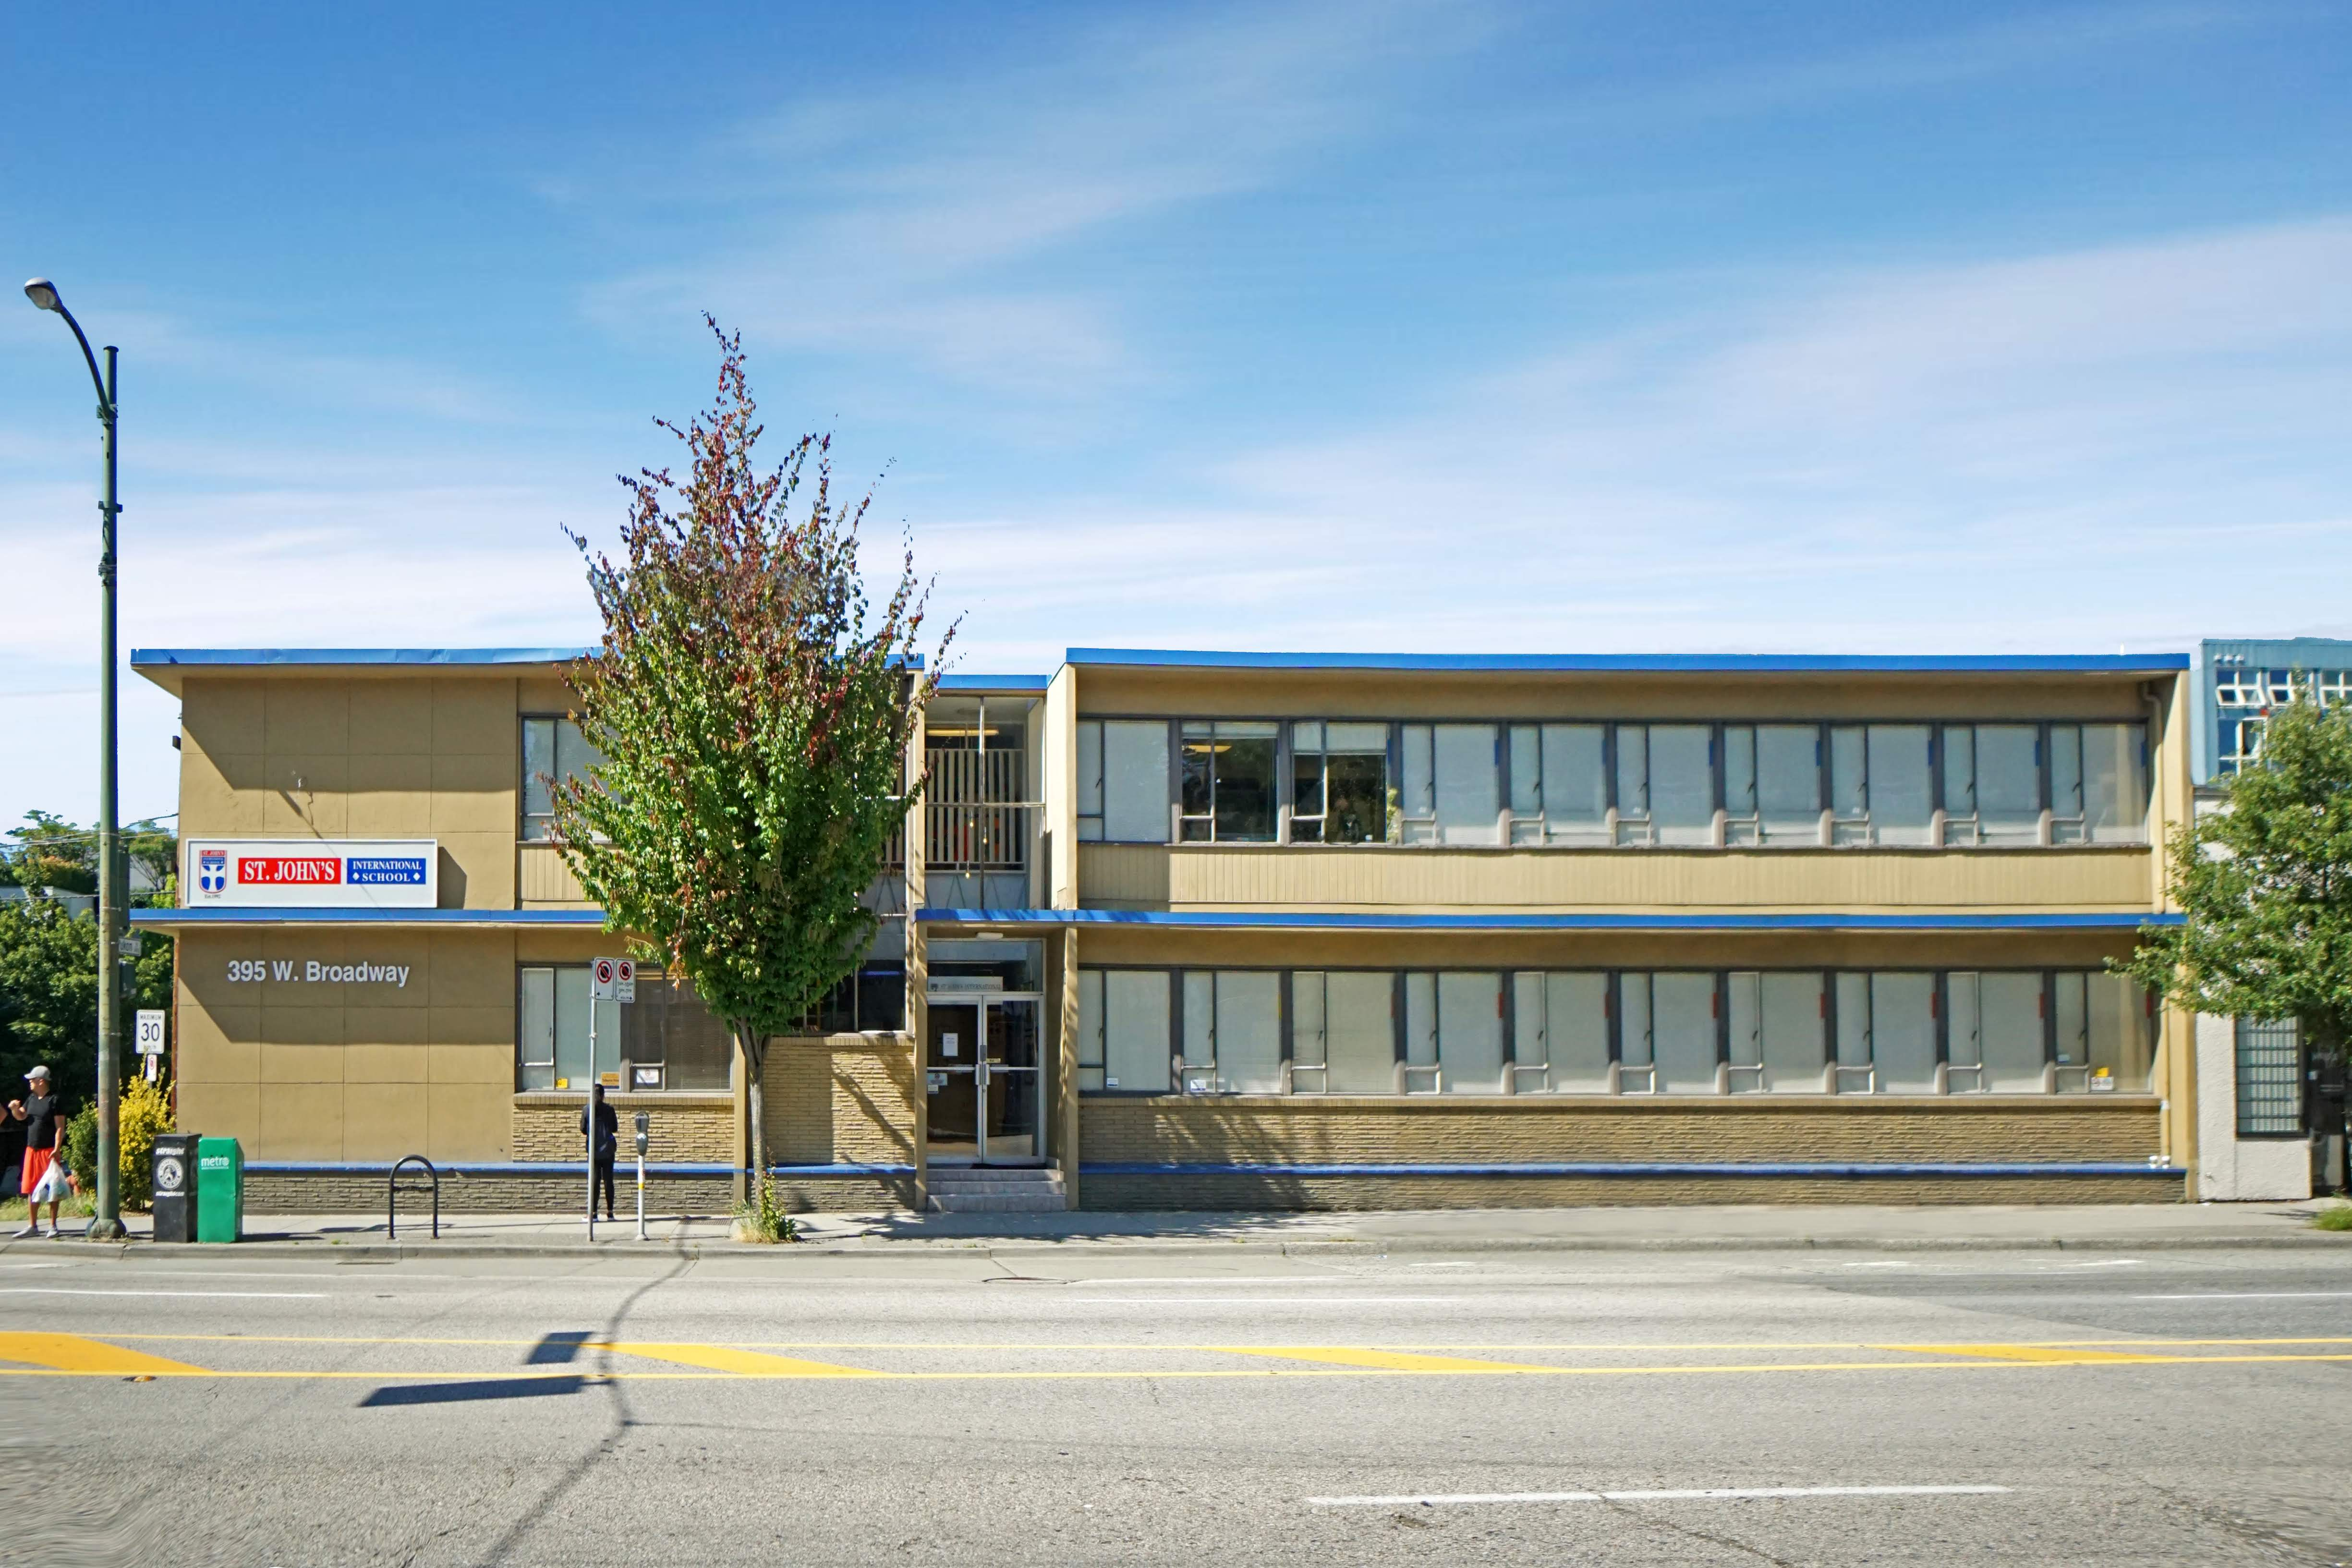 Trường Trung học St John's Academy - Victoria, Vancouver